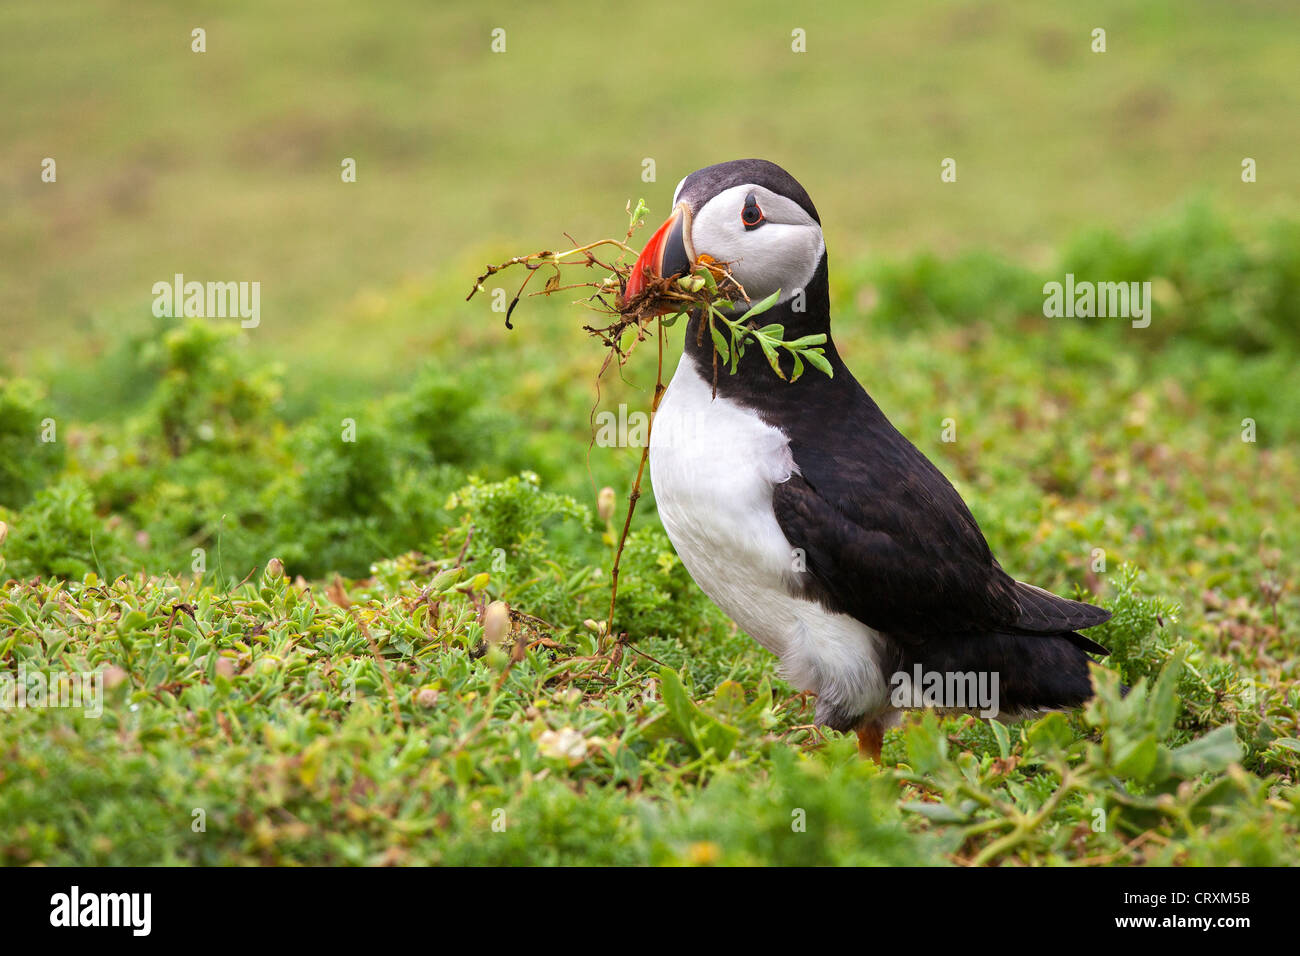 Puffin with nesting material - Stock Image